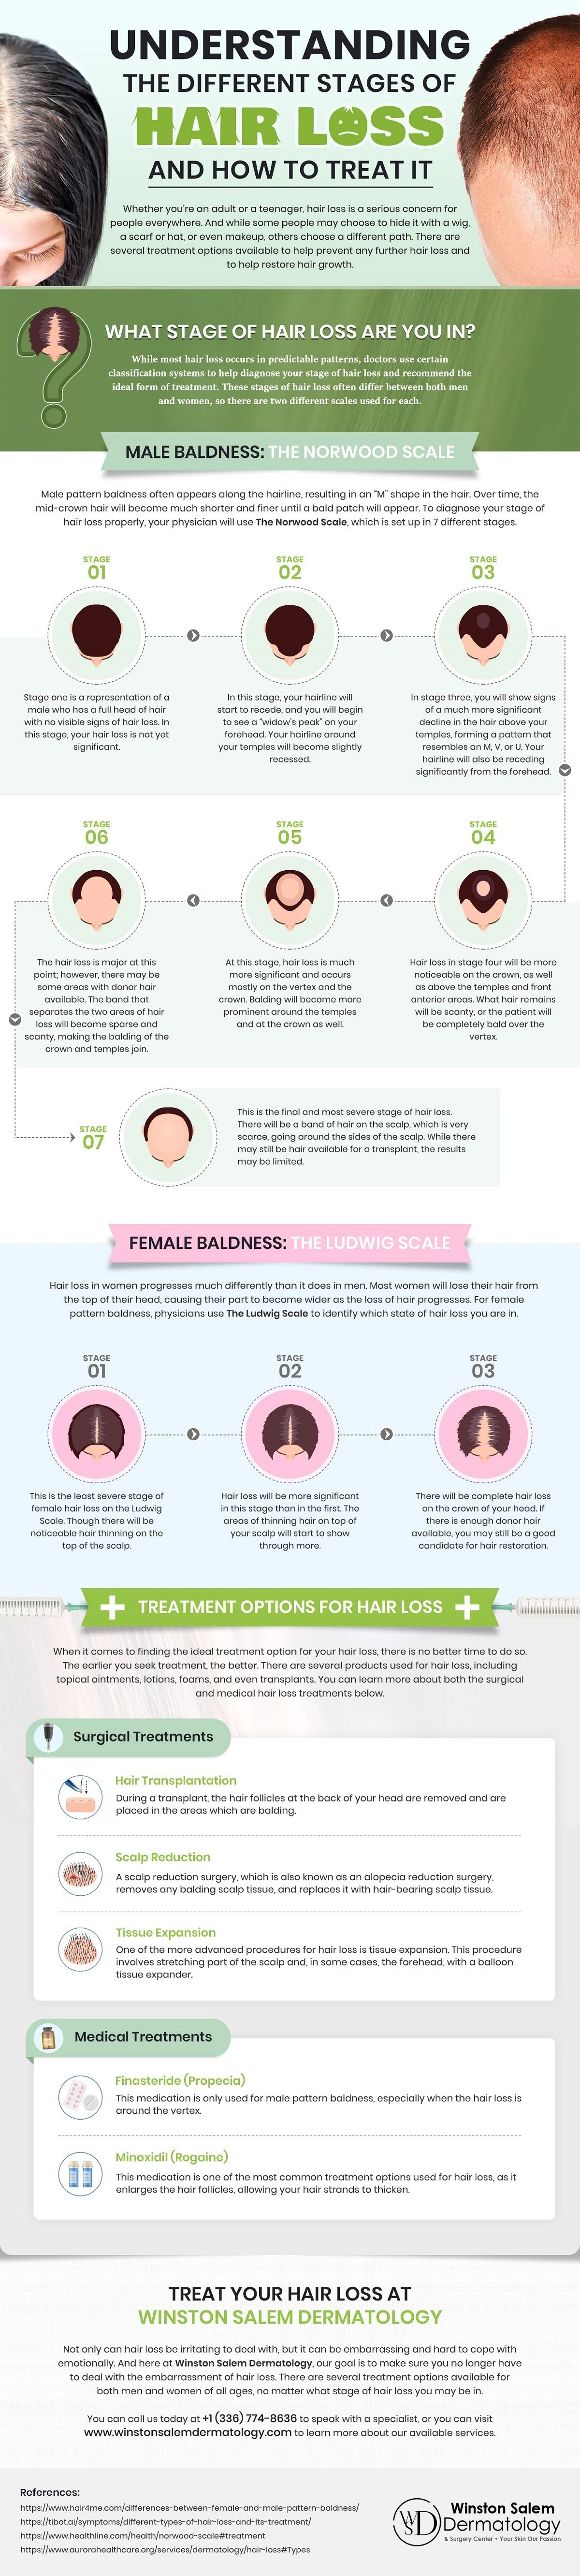 Understanding the Different Stages of Hair Loss and How to Treat It #infographic